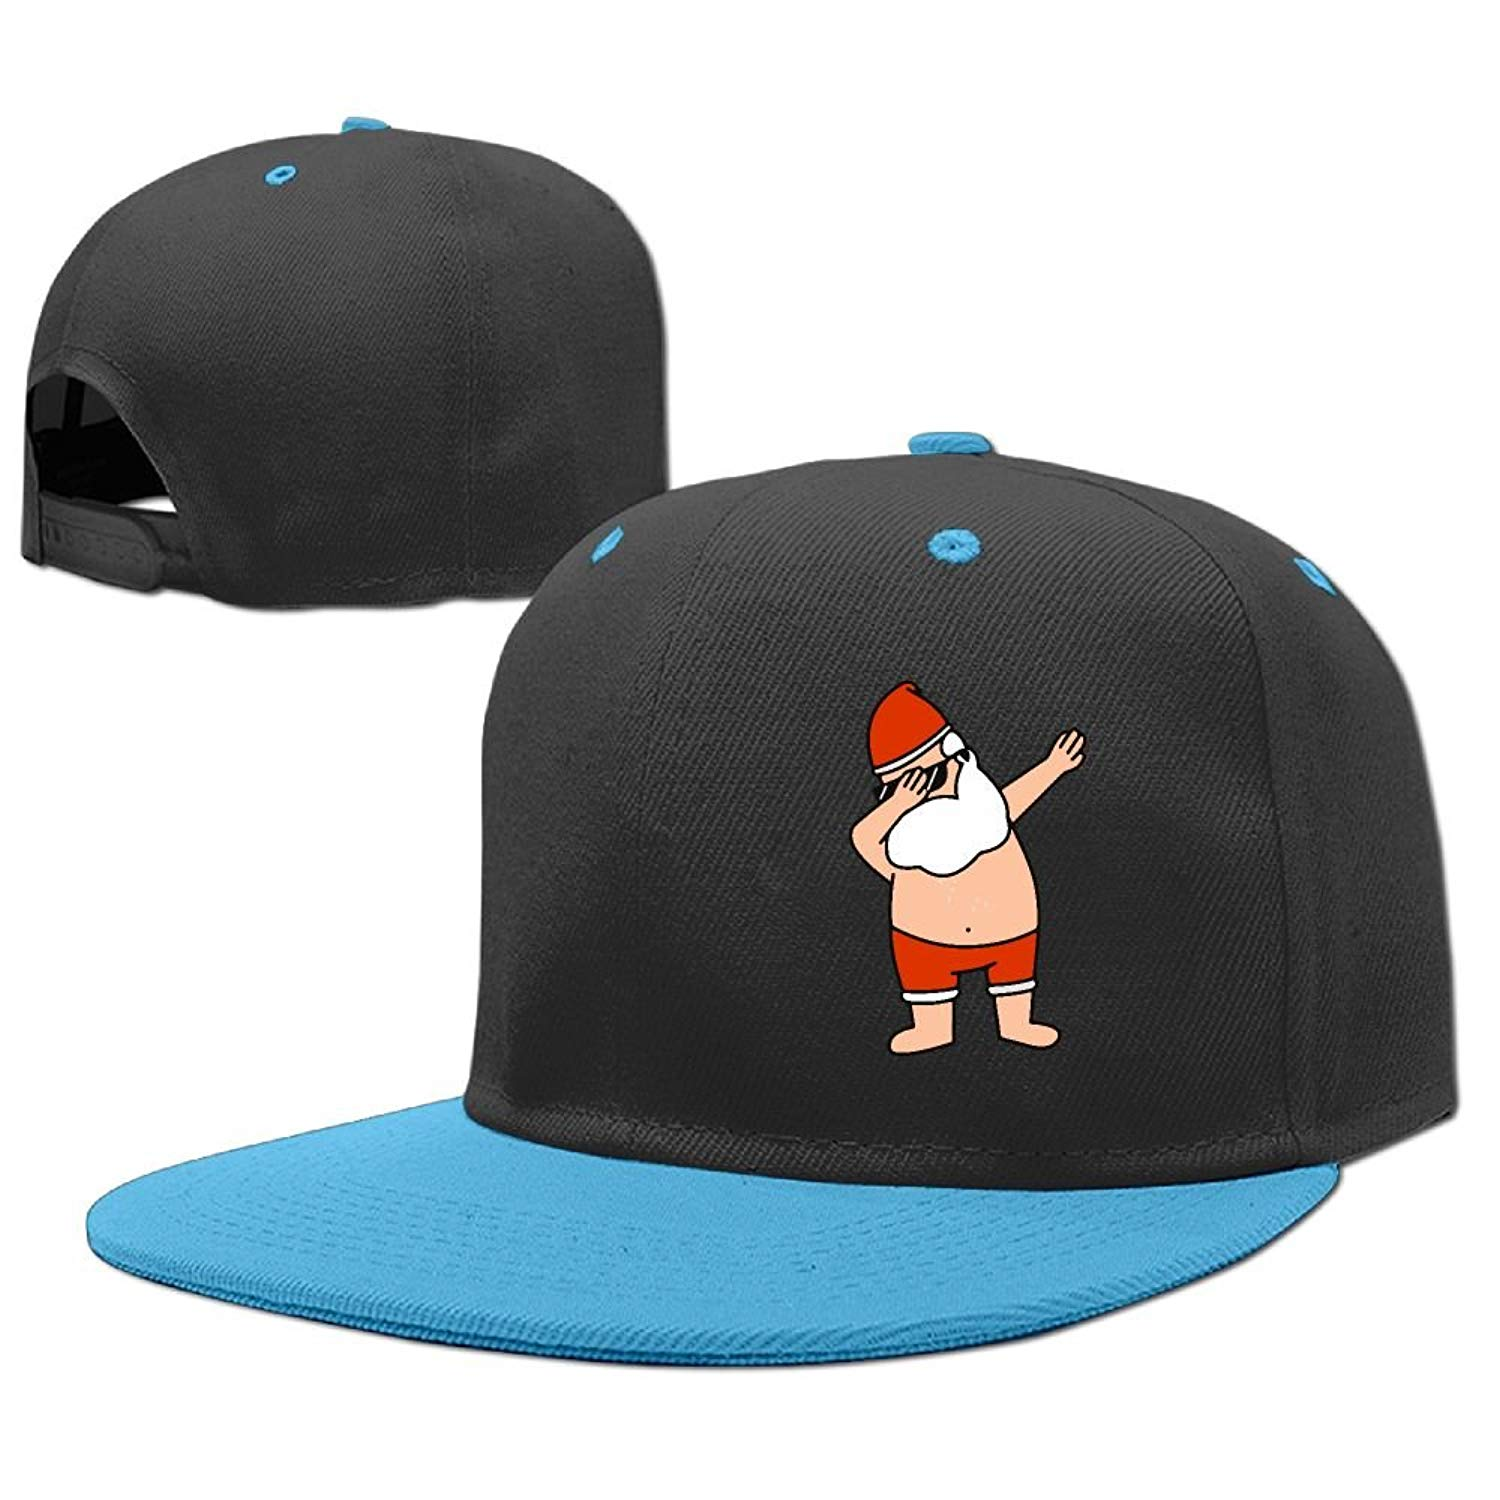 b756984c463a1 Get Quotations · LOGENLIKE Dabbing Santa Kids Snapback Hat - Hip Hop  Baseball Cap for Boys Girls